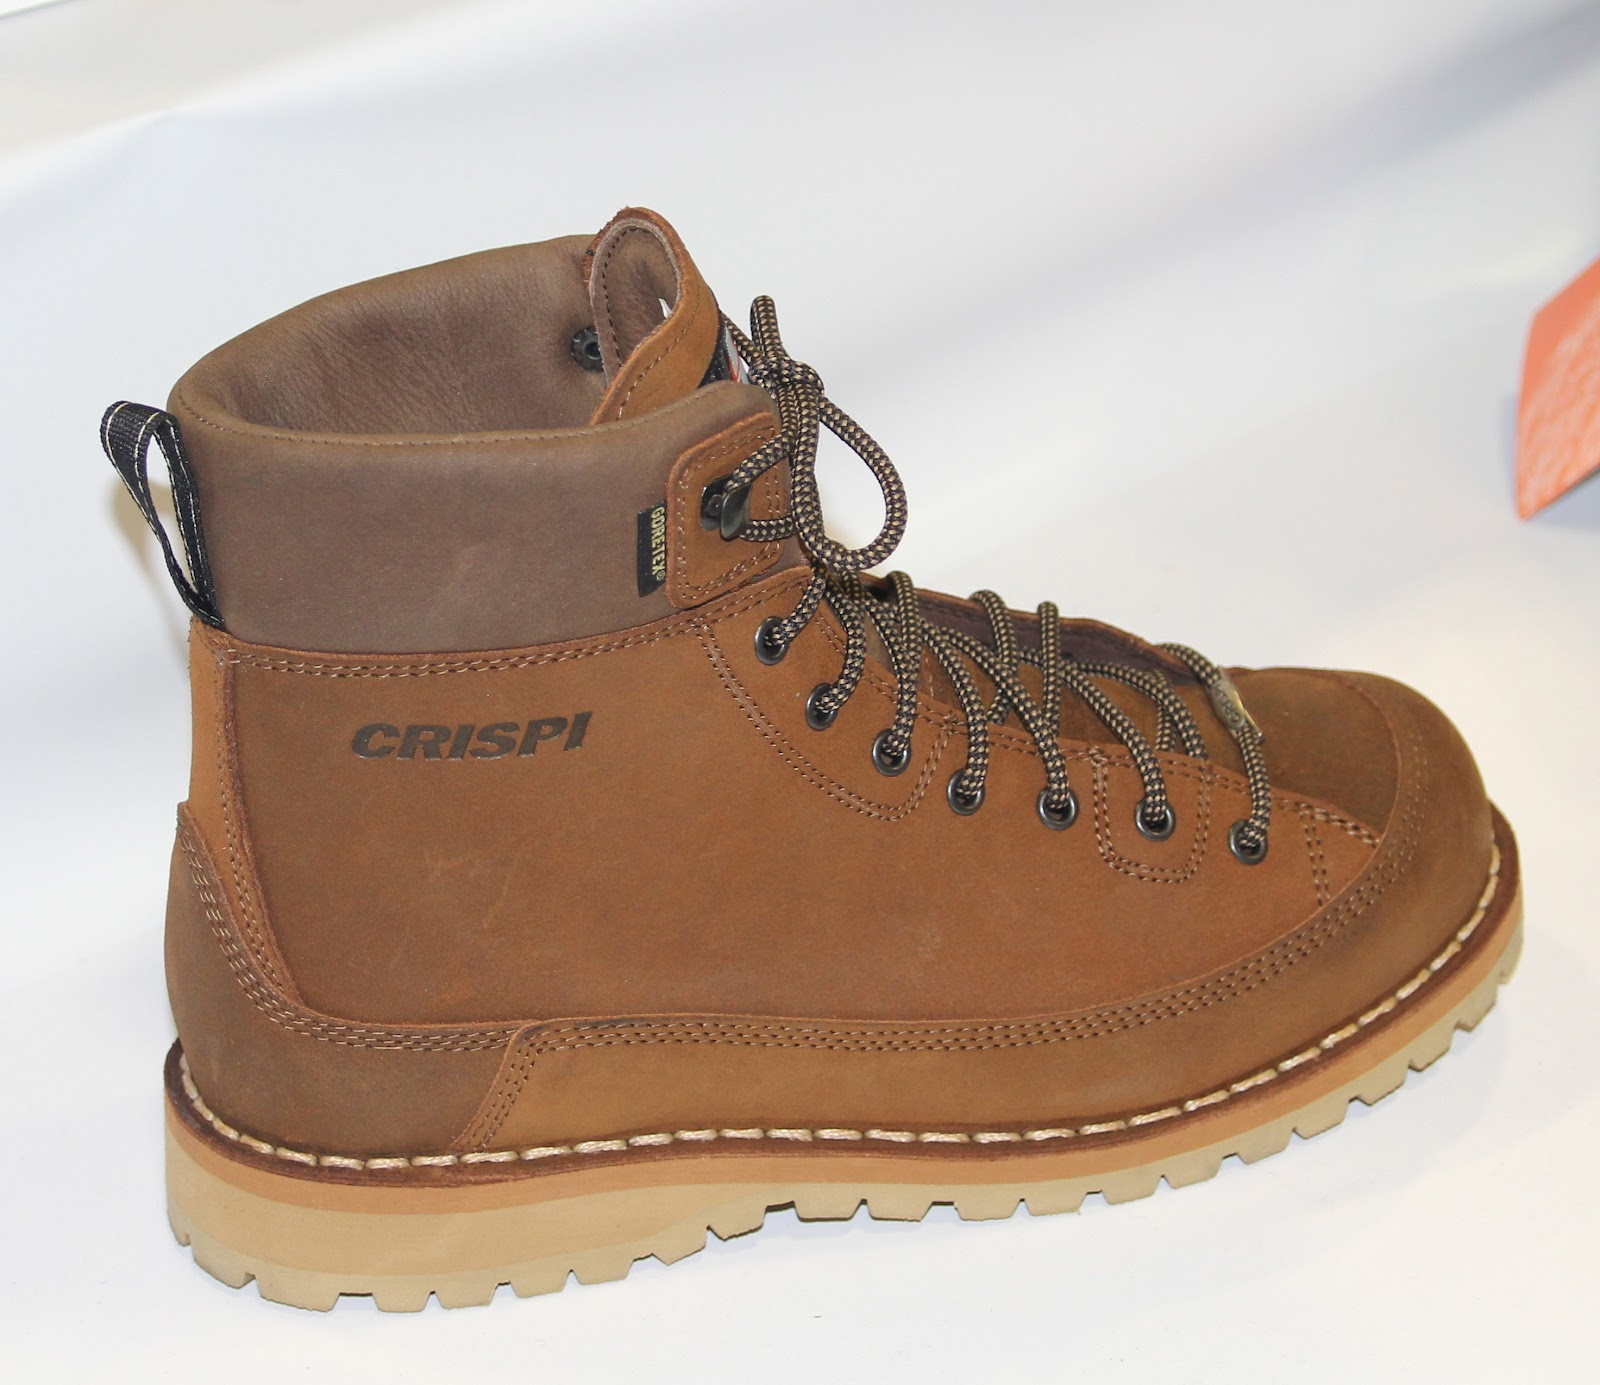 Leeds Ideal greased water repellant leather, Gore-Tex® lining, Vibram®  sole-with stitched rand protection, Crispi's special insole too-685 gr